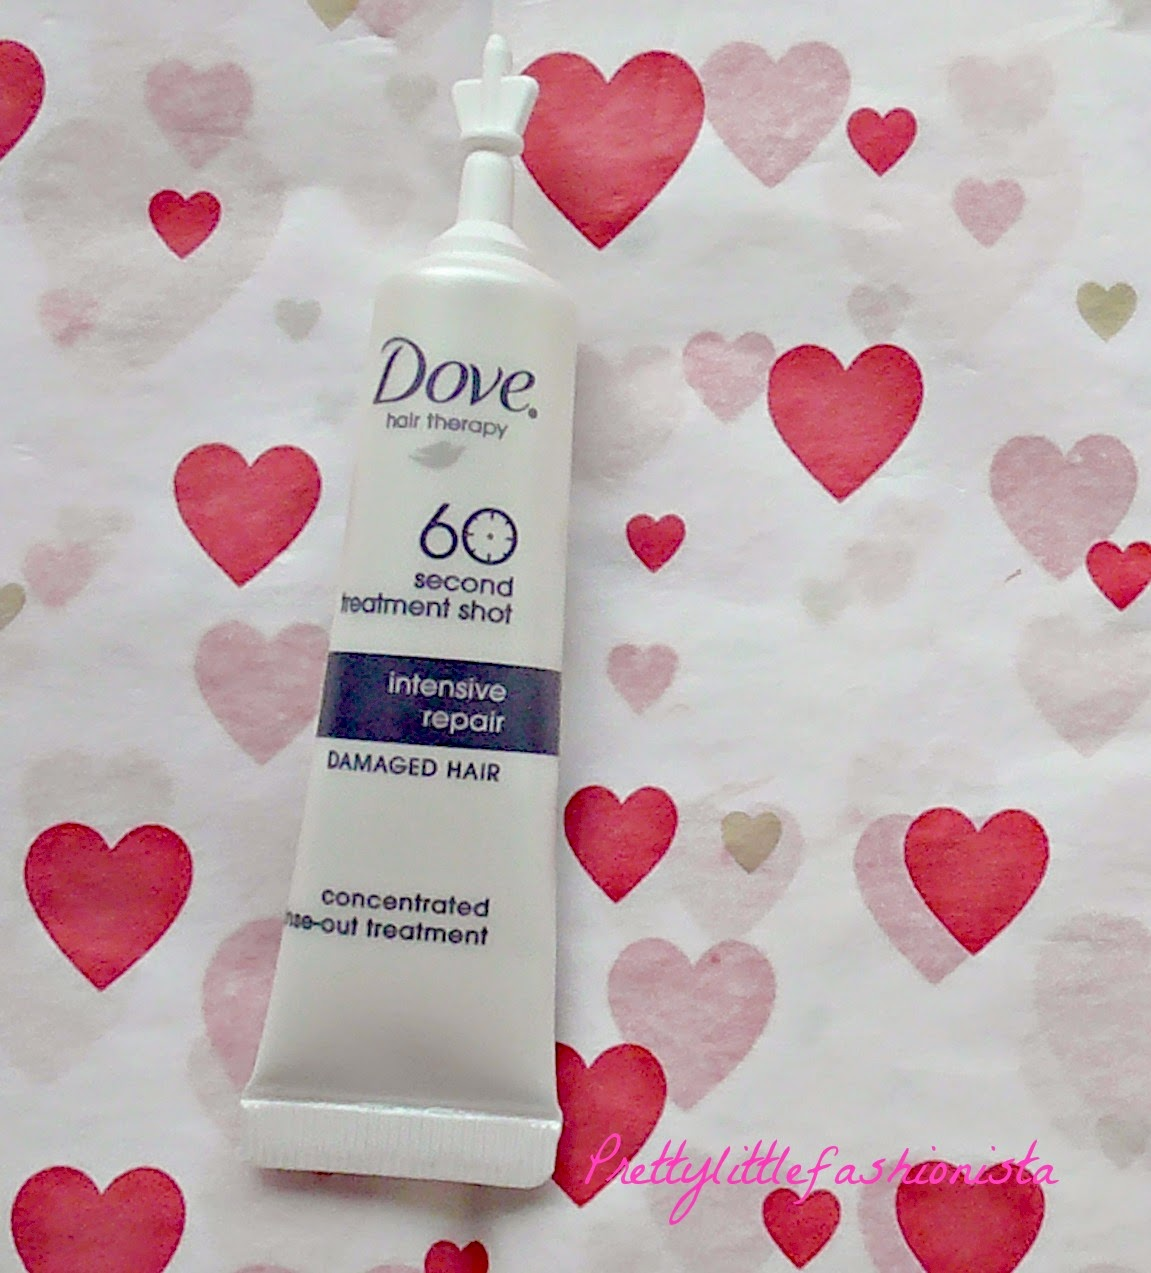 Dove 60 Second Treatment Shot